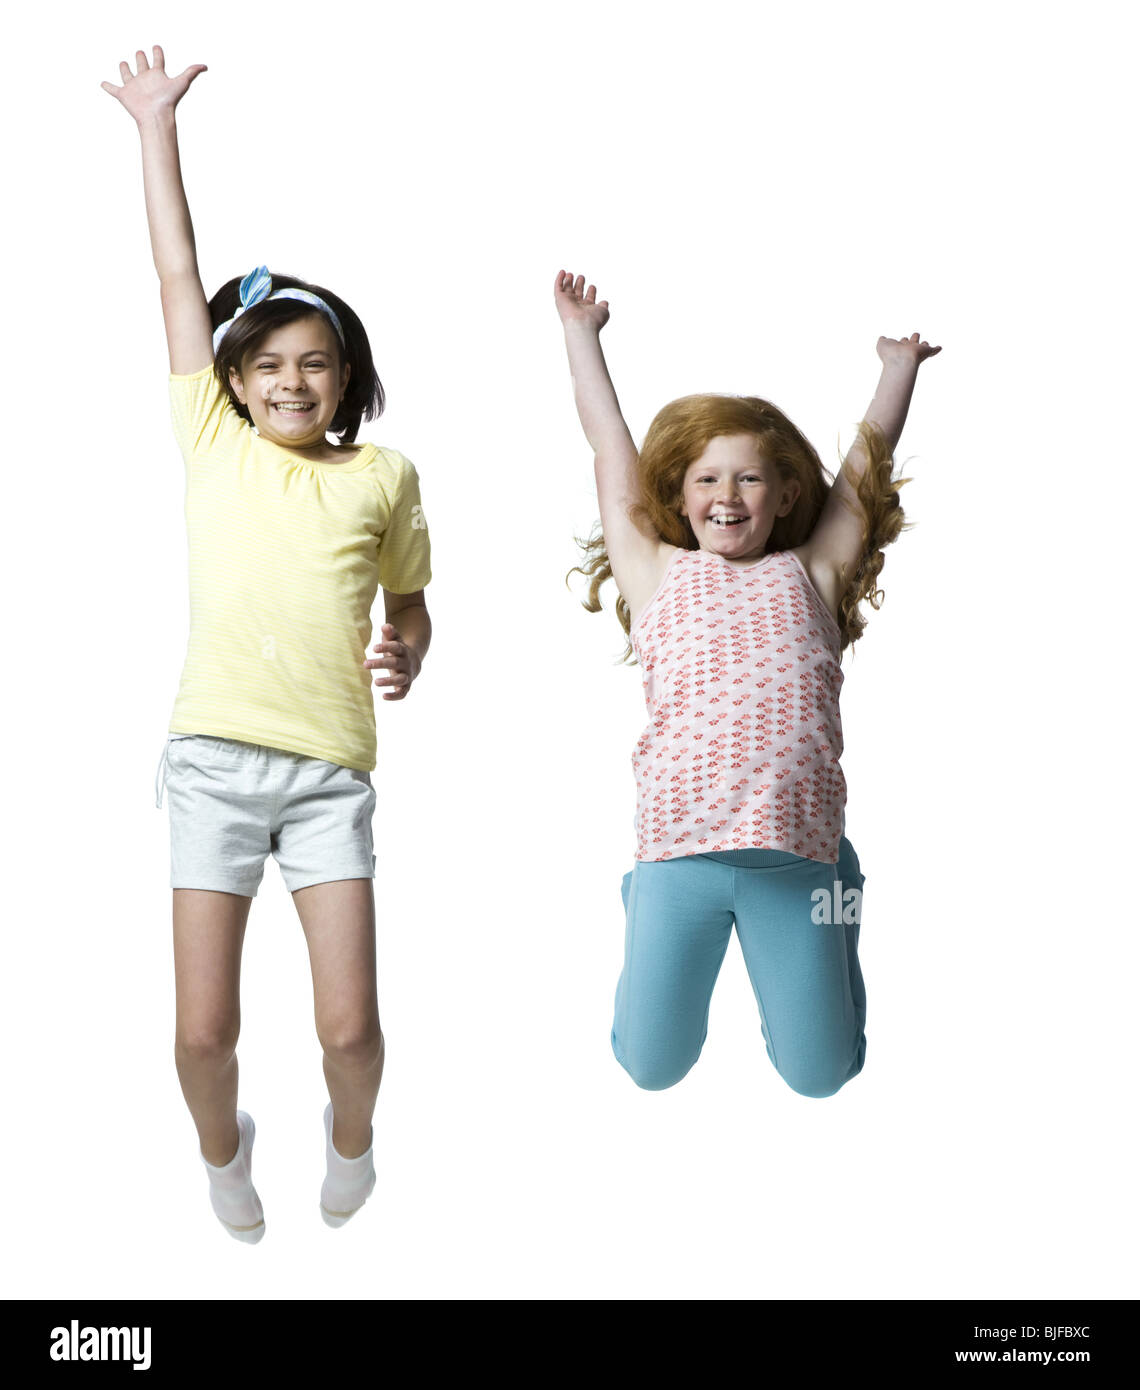 two girls jumping - Stock Image